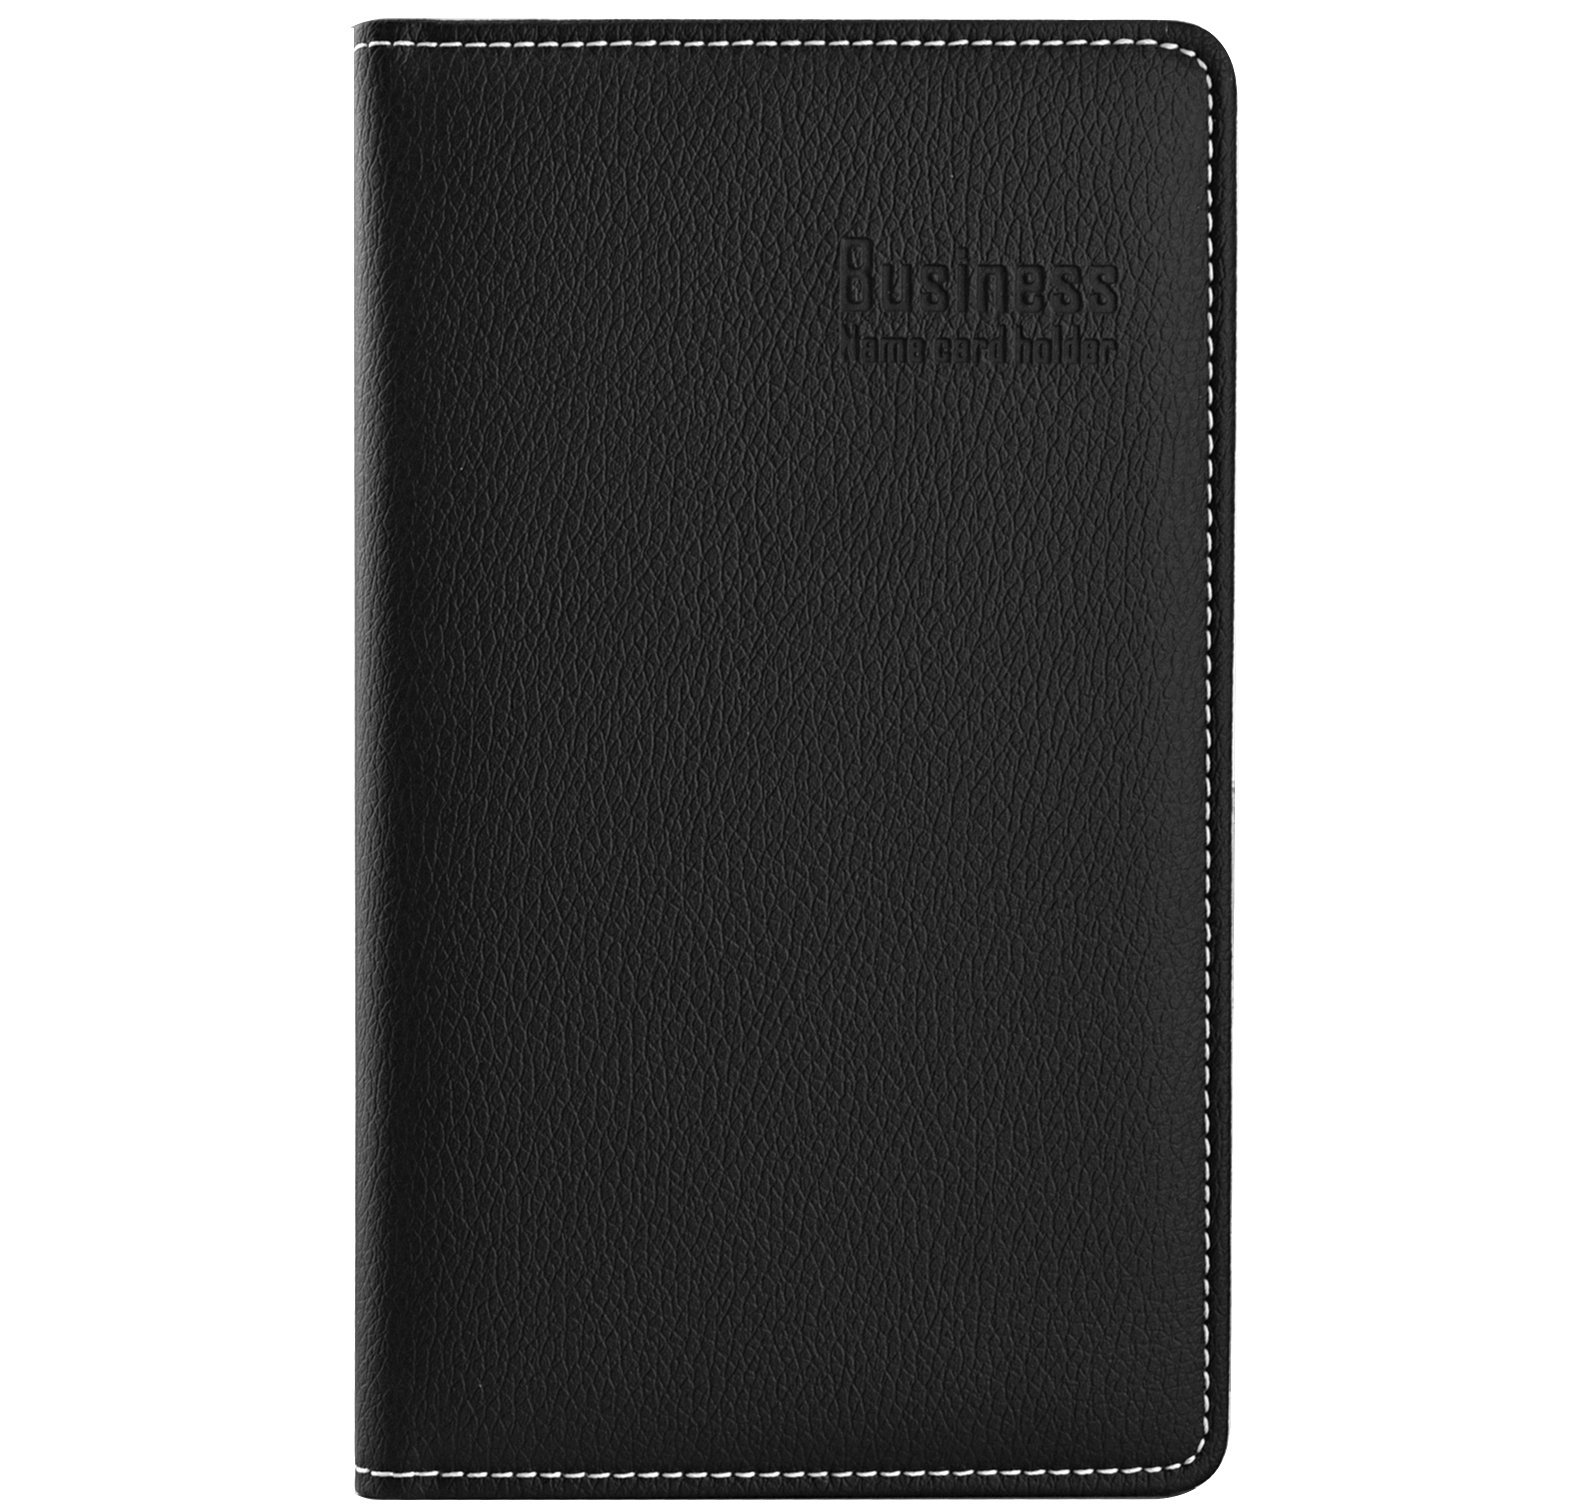 Maxgear Professional Leather Business Card Book Holder, Business Card Organizer, Name Card Book Holder -Holds 180 Cards Black